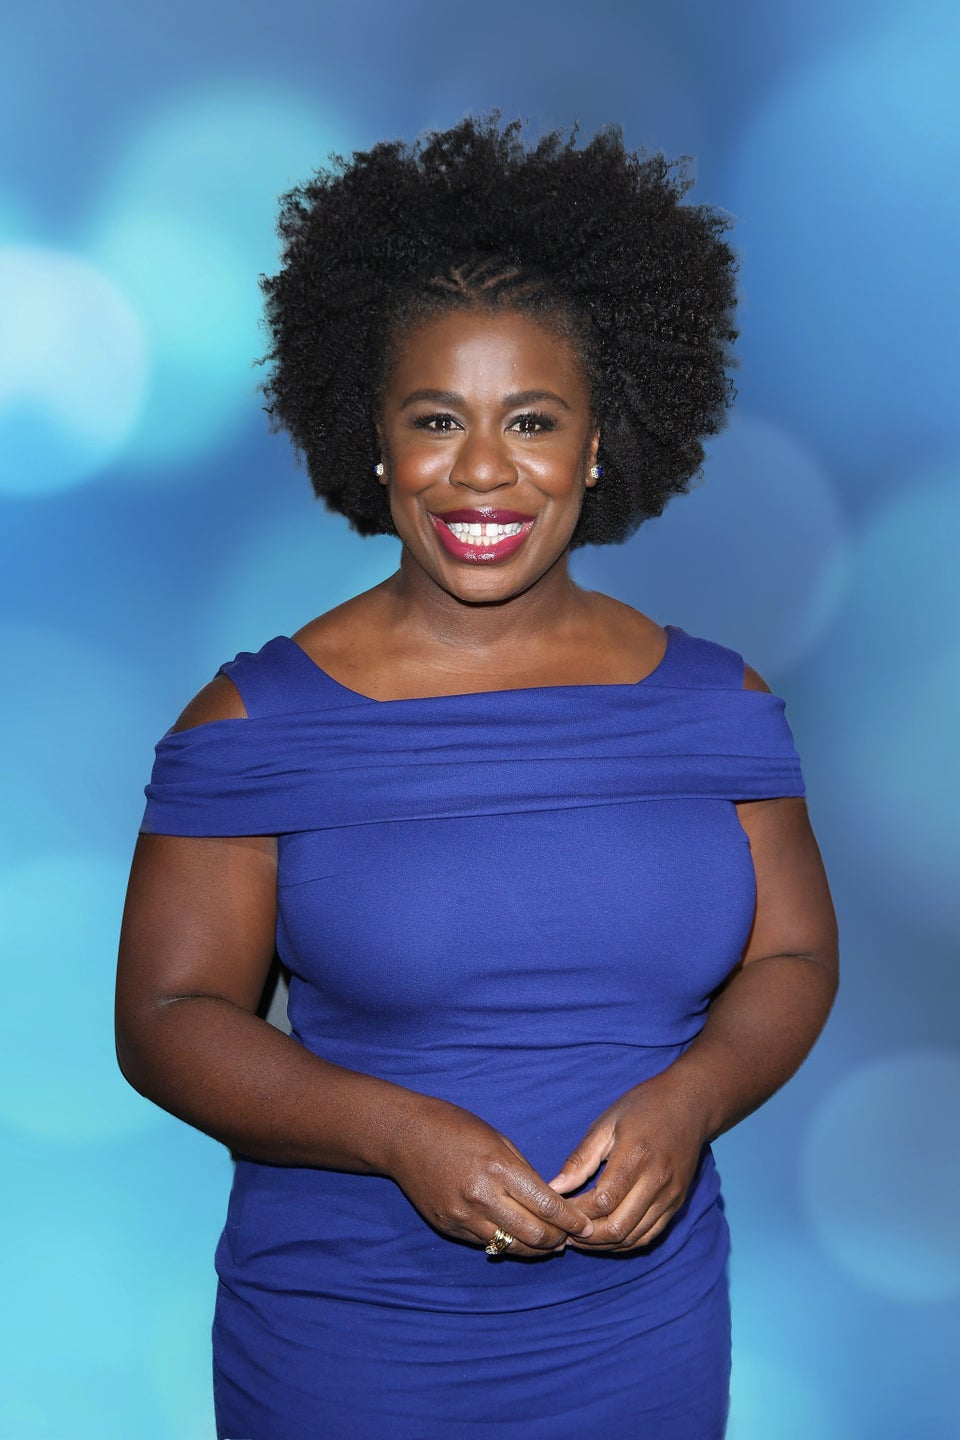 'Fro Envy: Uzo Aduba's Hair Reaches New Heights In Gorgeous Photo